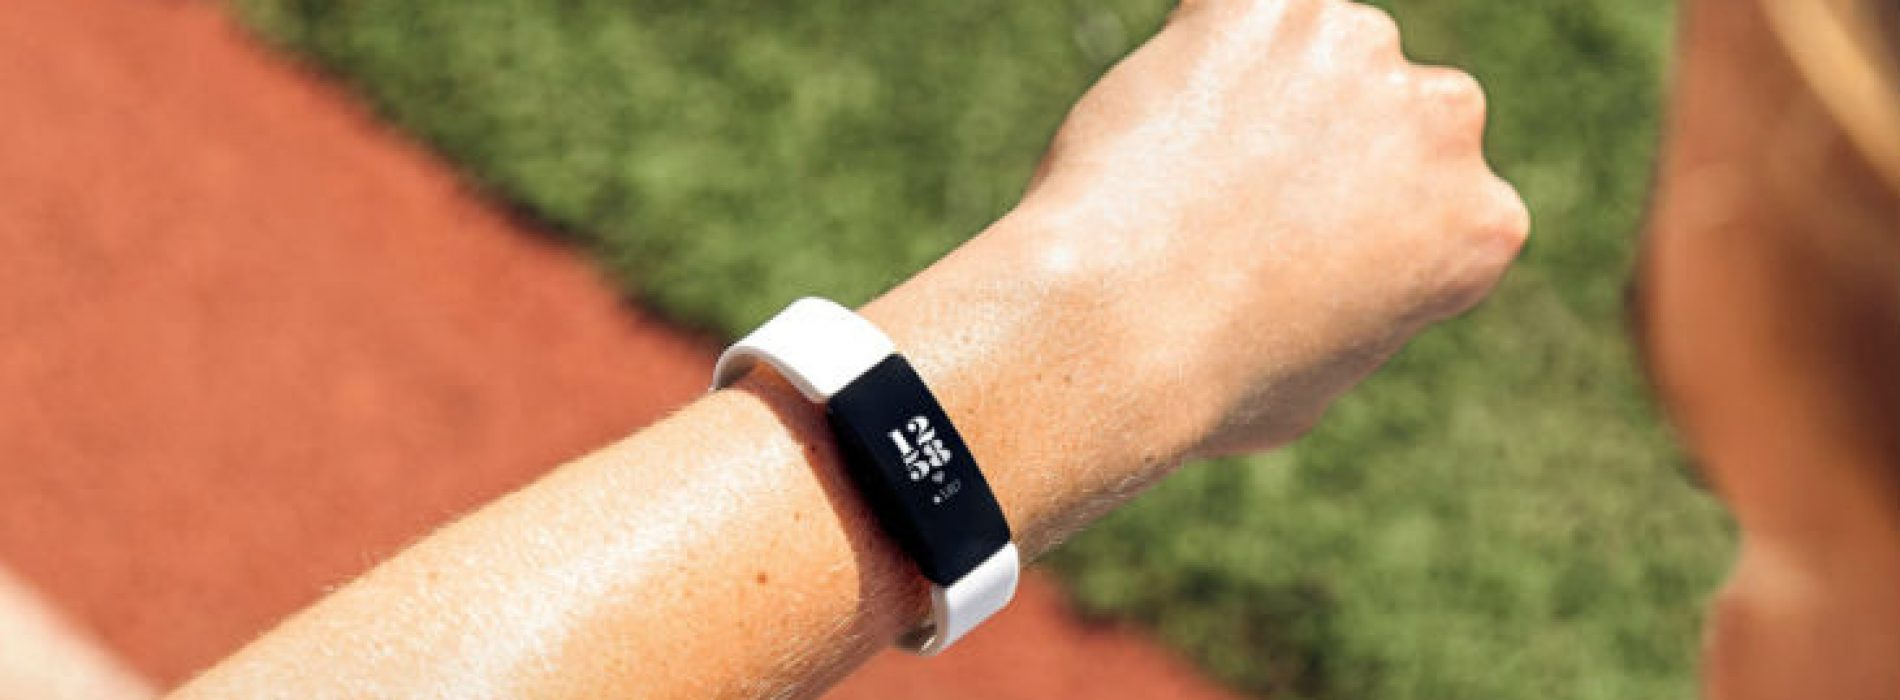 History Of Activity Trackers (From Pedometers To Fitbit)